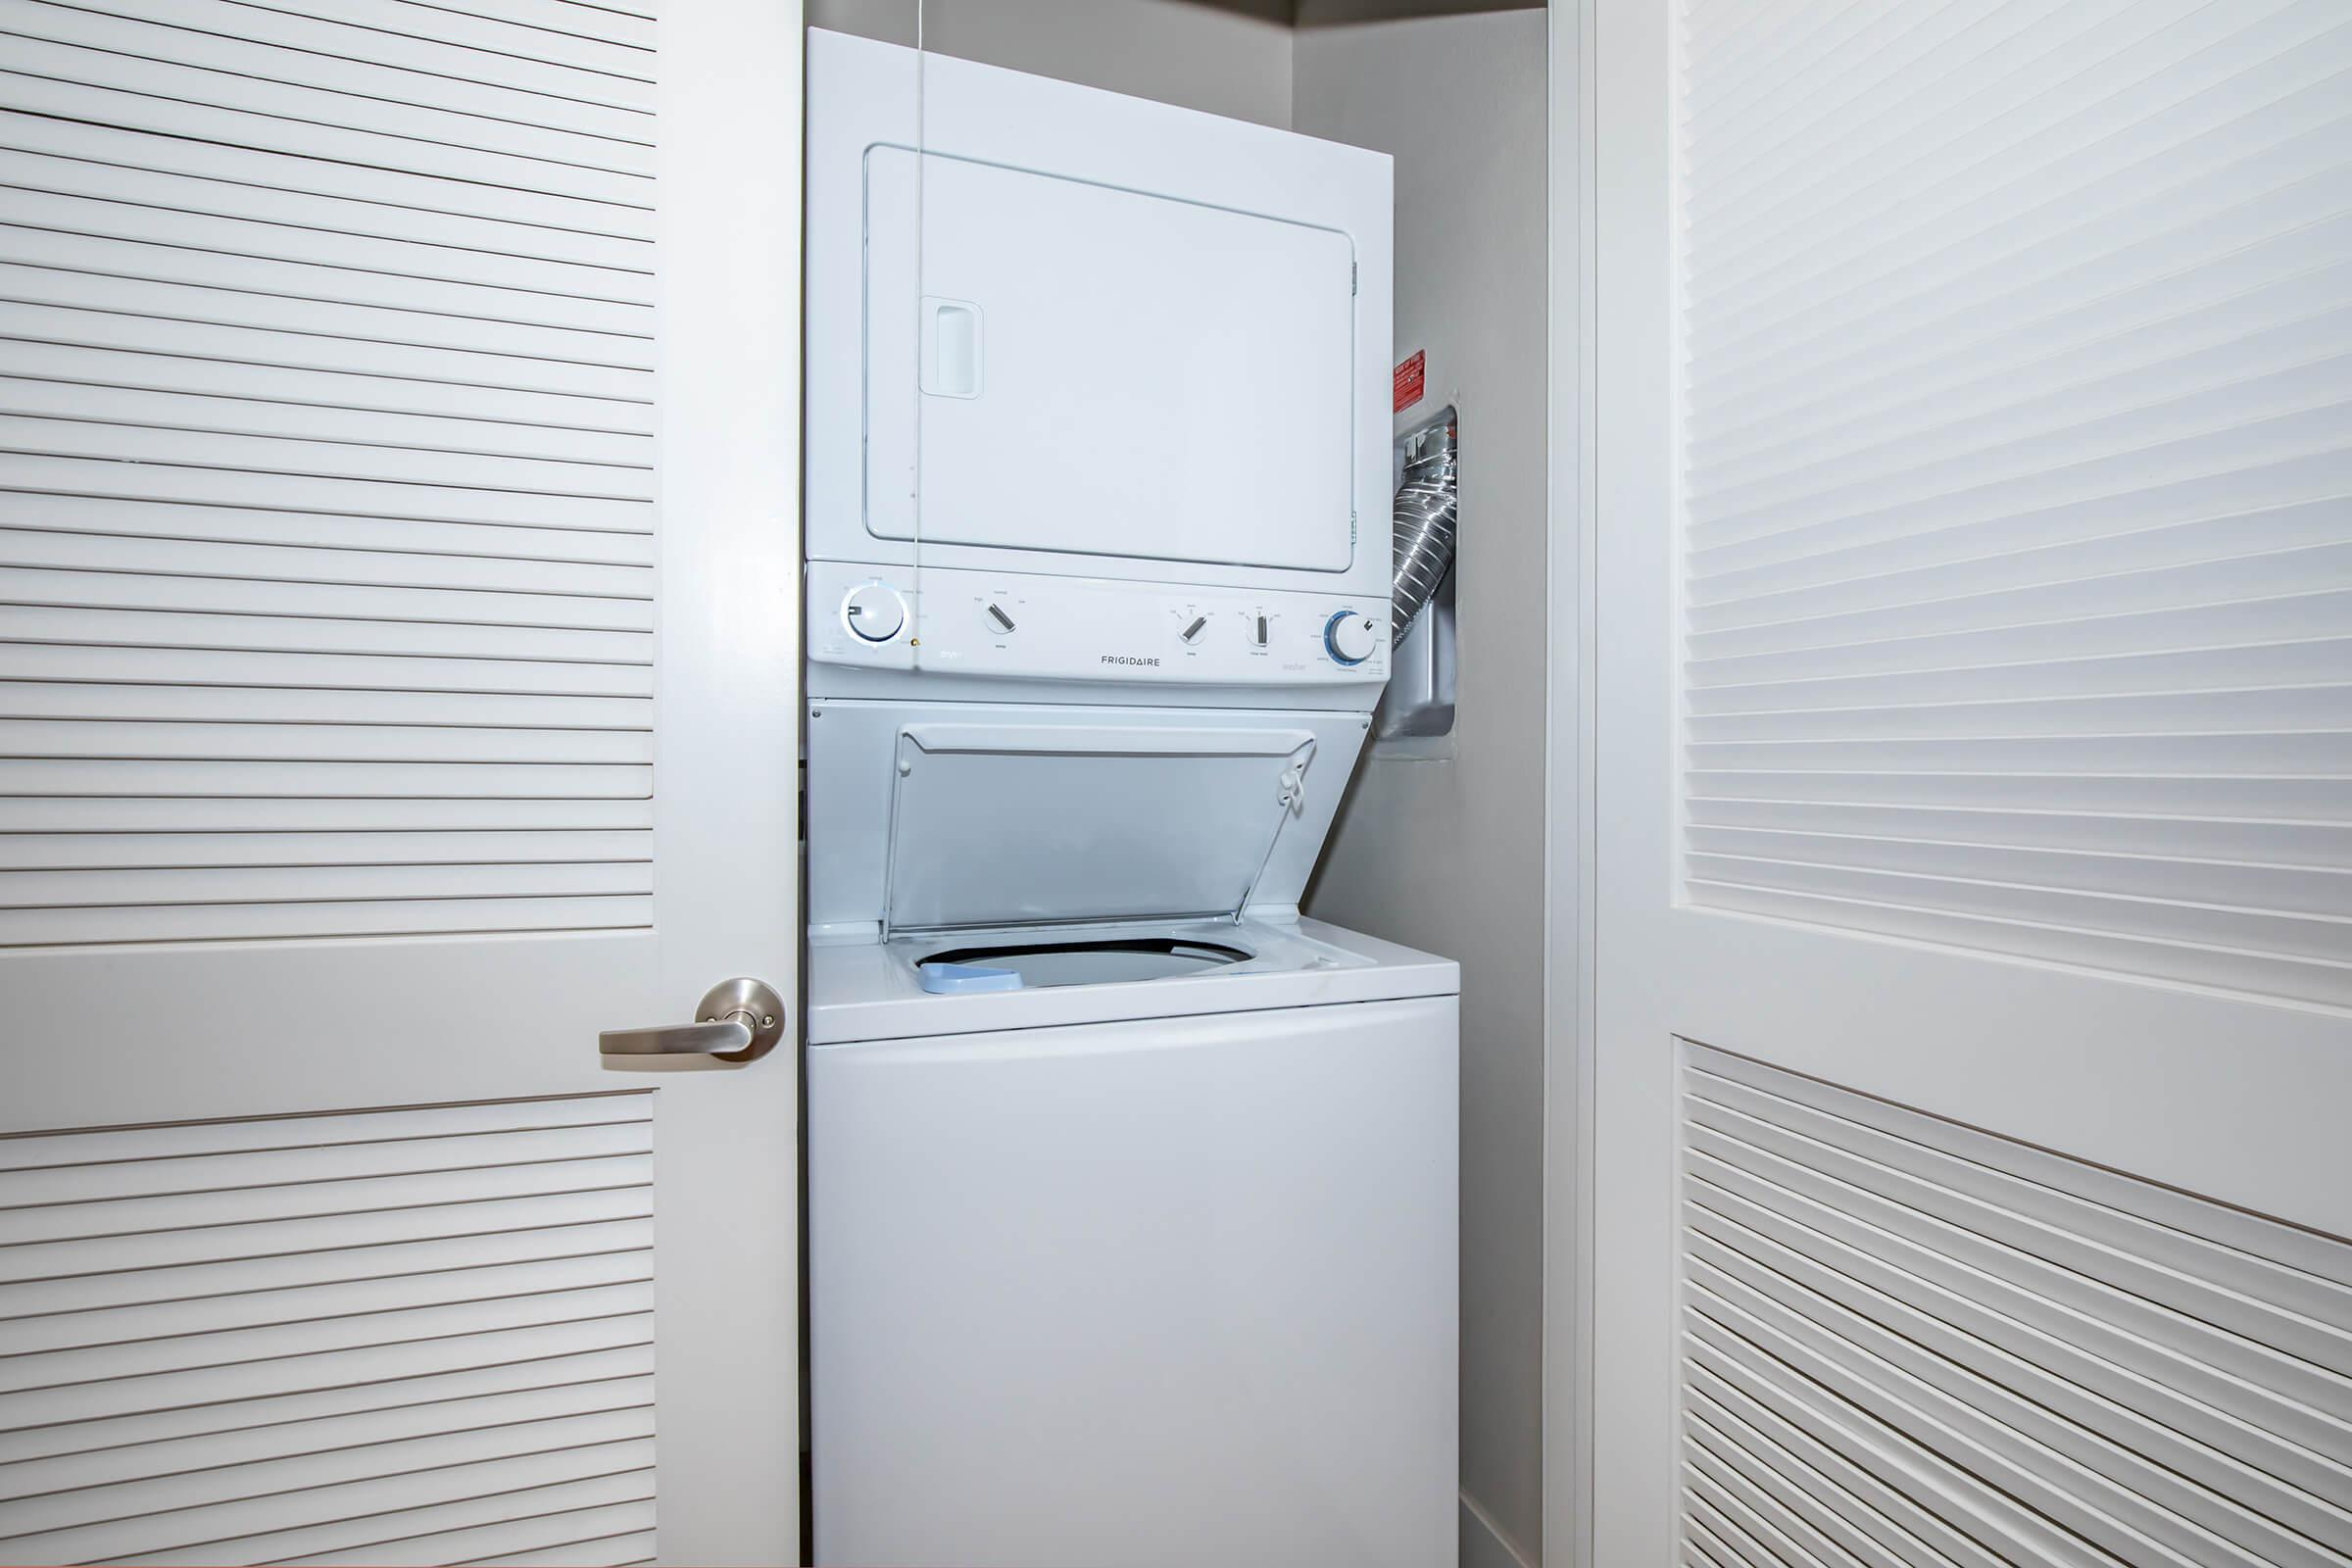 a white refrigerator freezer sitting next to a window